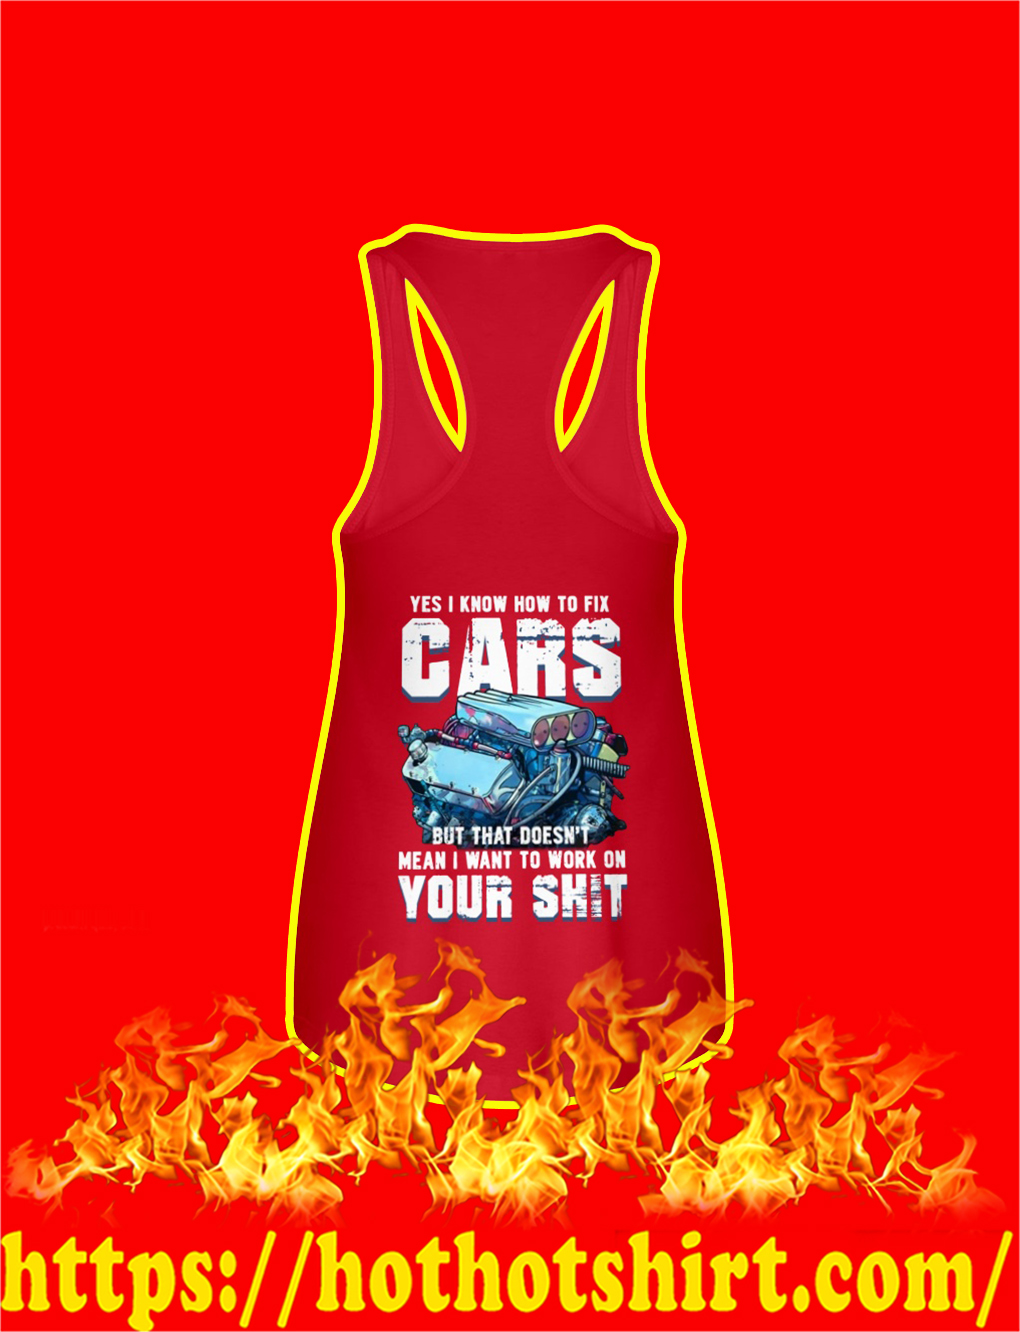 Yes I Know How To Fix Cars But That Doesn't Mean I Want To Work On Your Shit Tank Top